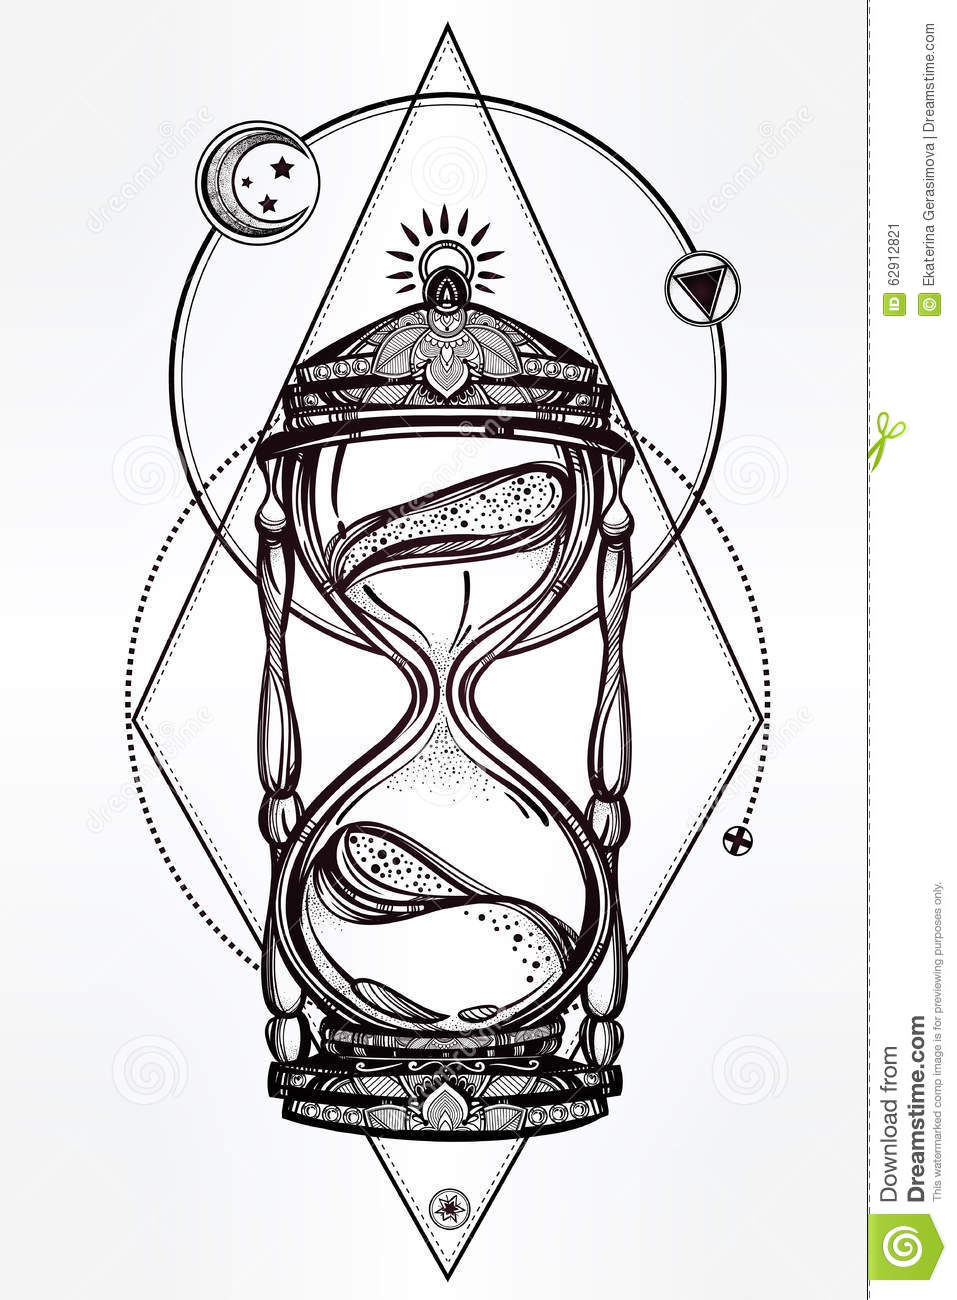 Hand Drawn Romantic Design Of A Hourglass Stock Vector